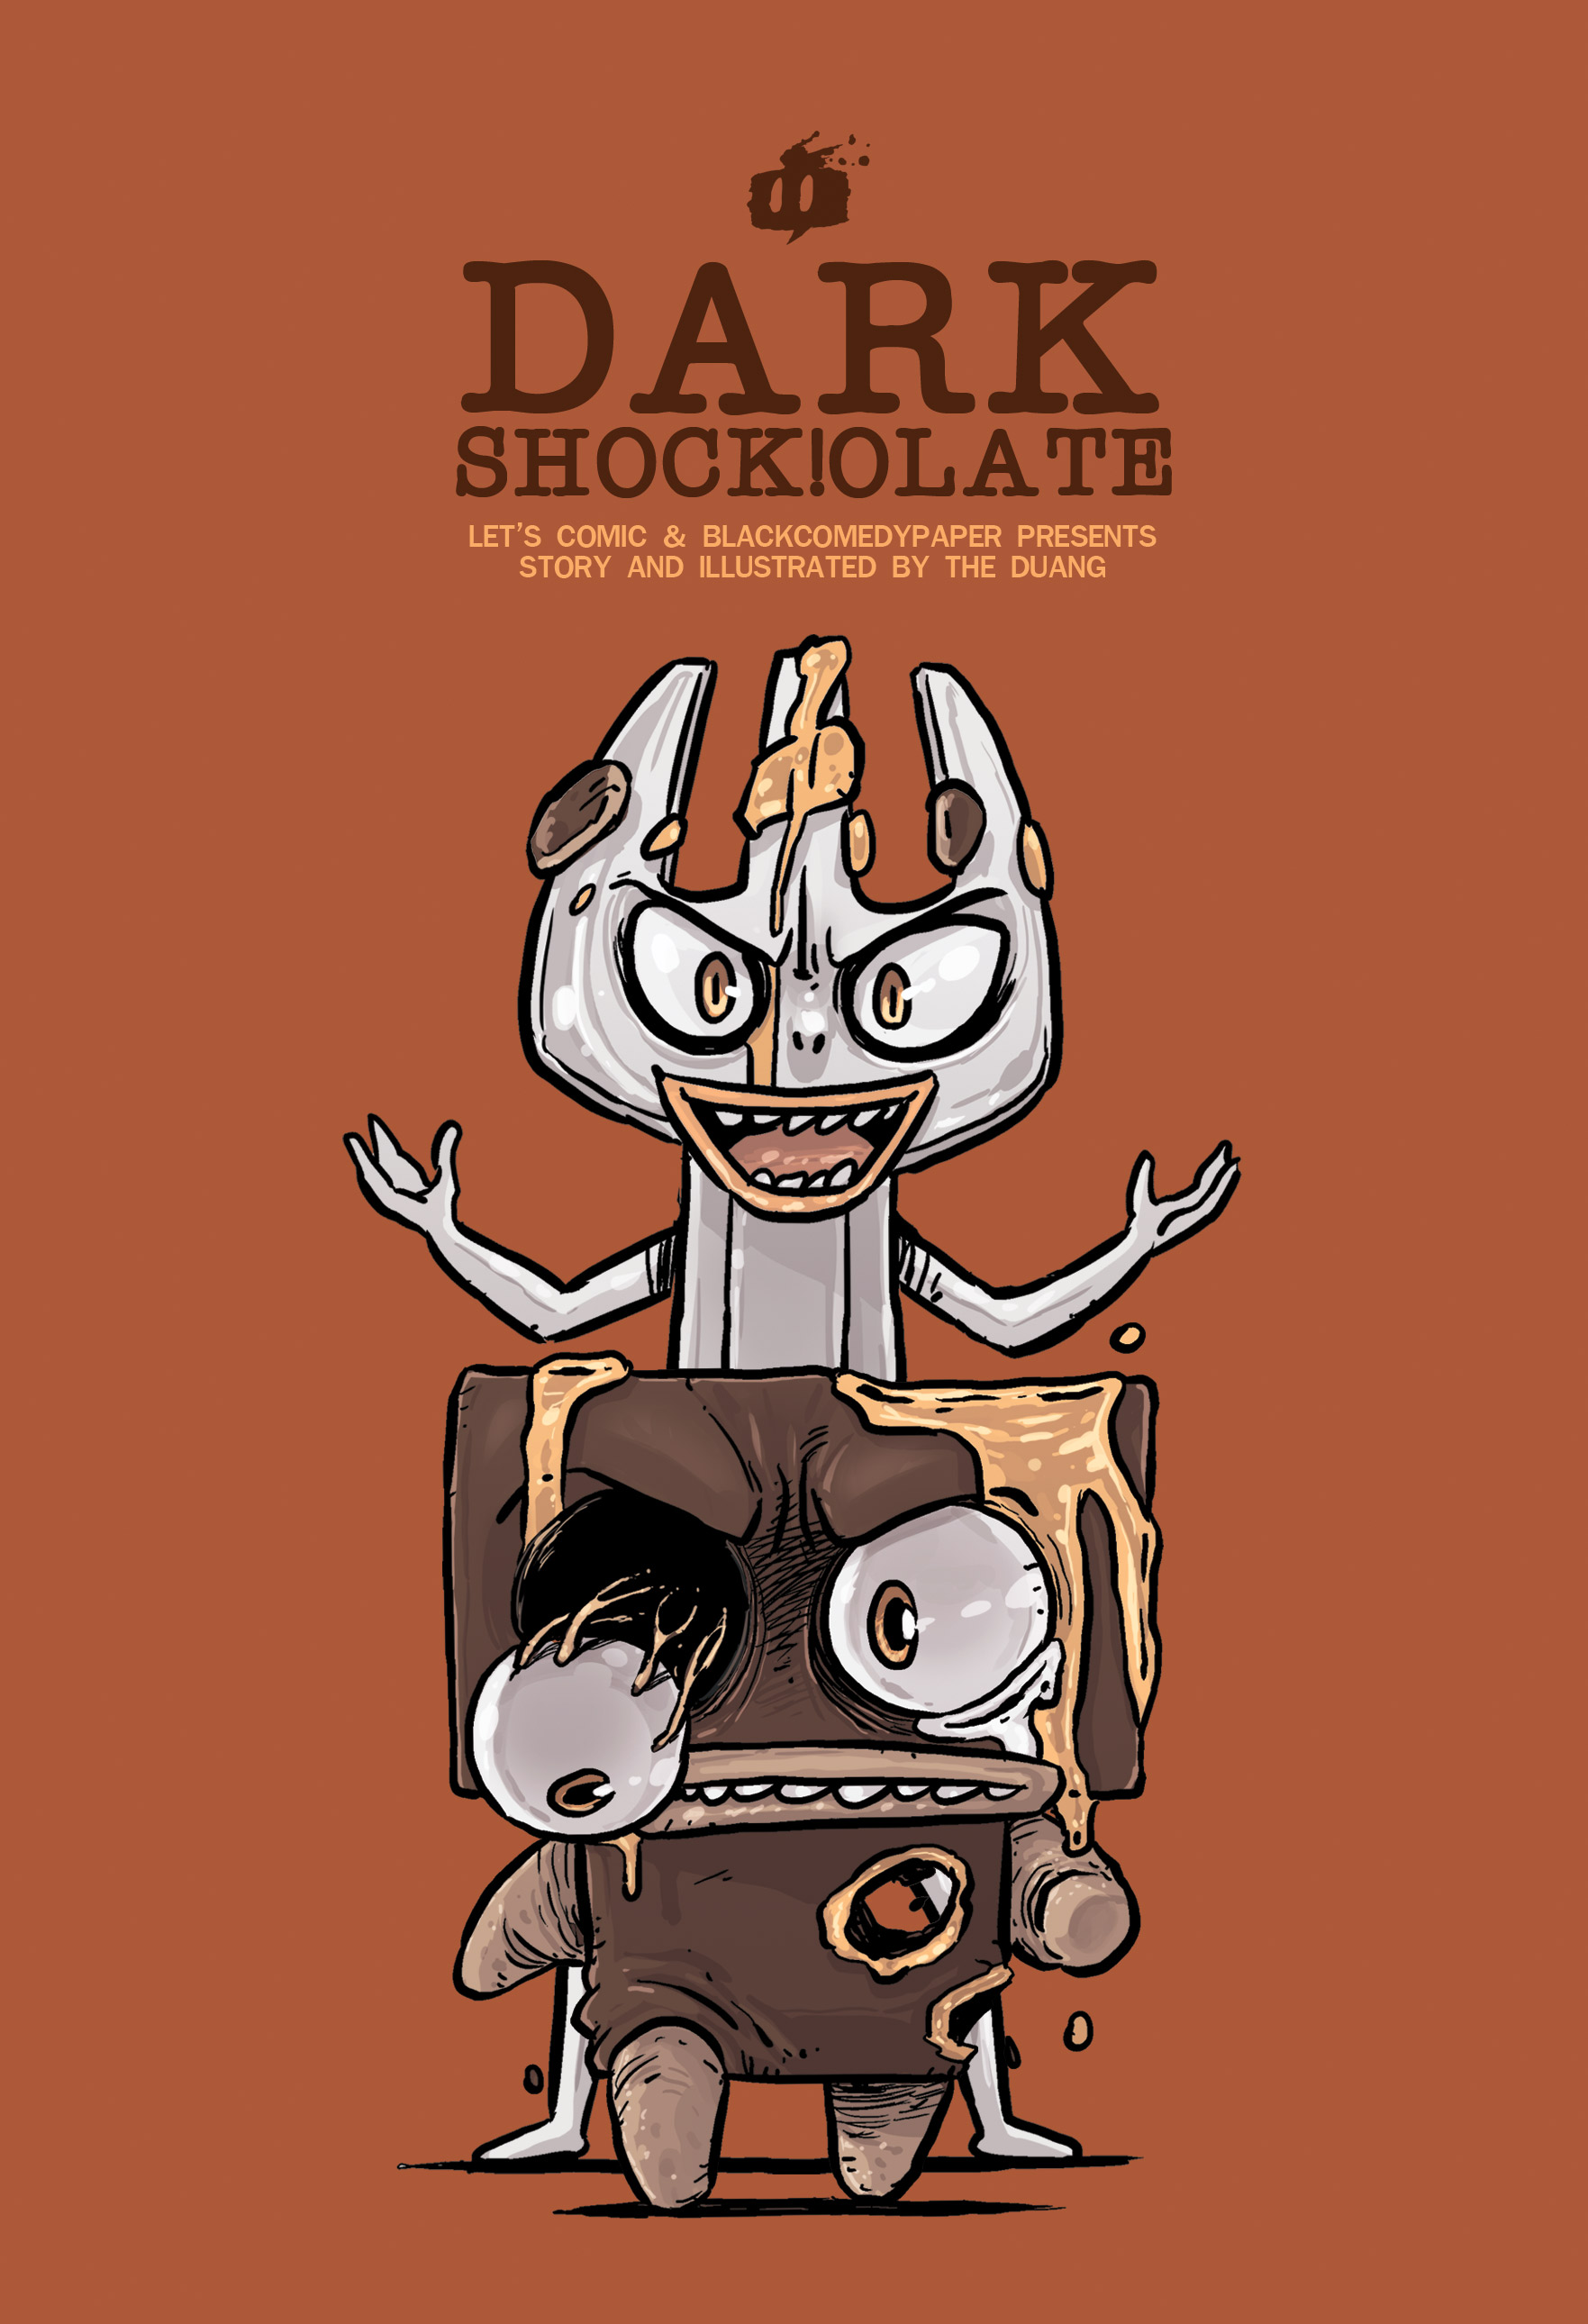 Dark Shockolate